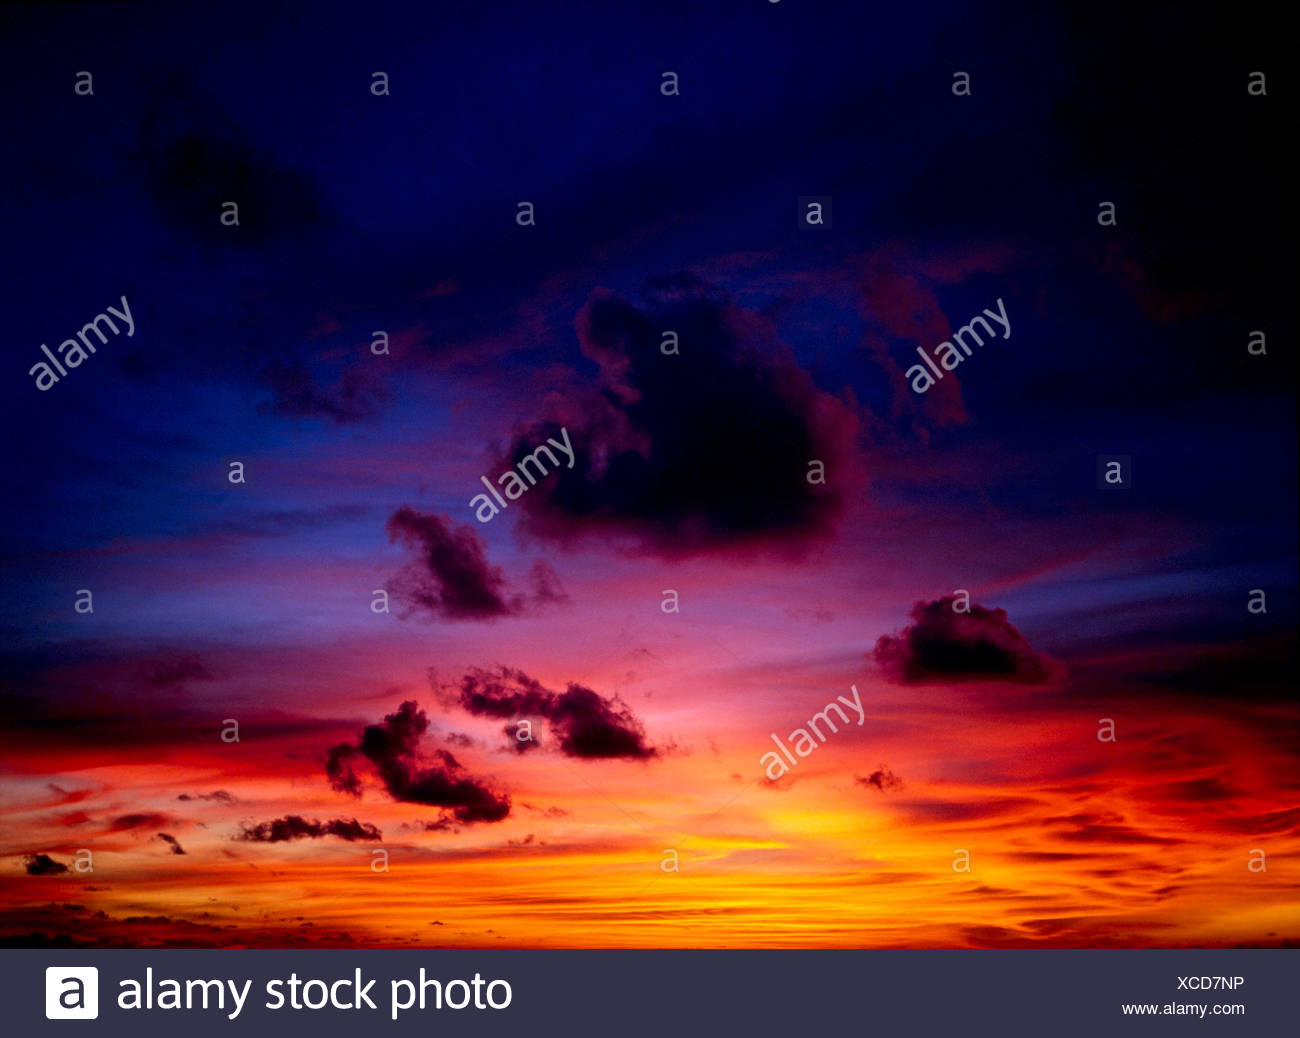 SUNSET SKY,KUTA BEACH,BALI,INDONESIA - Stock Image